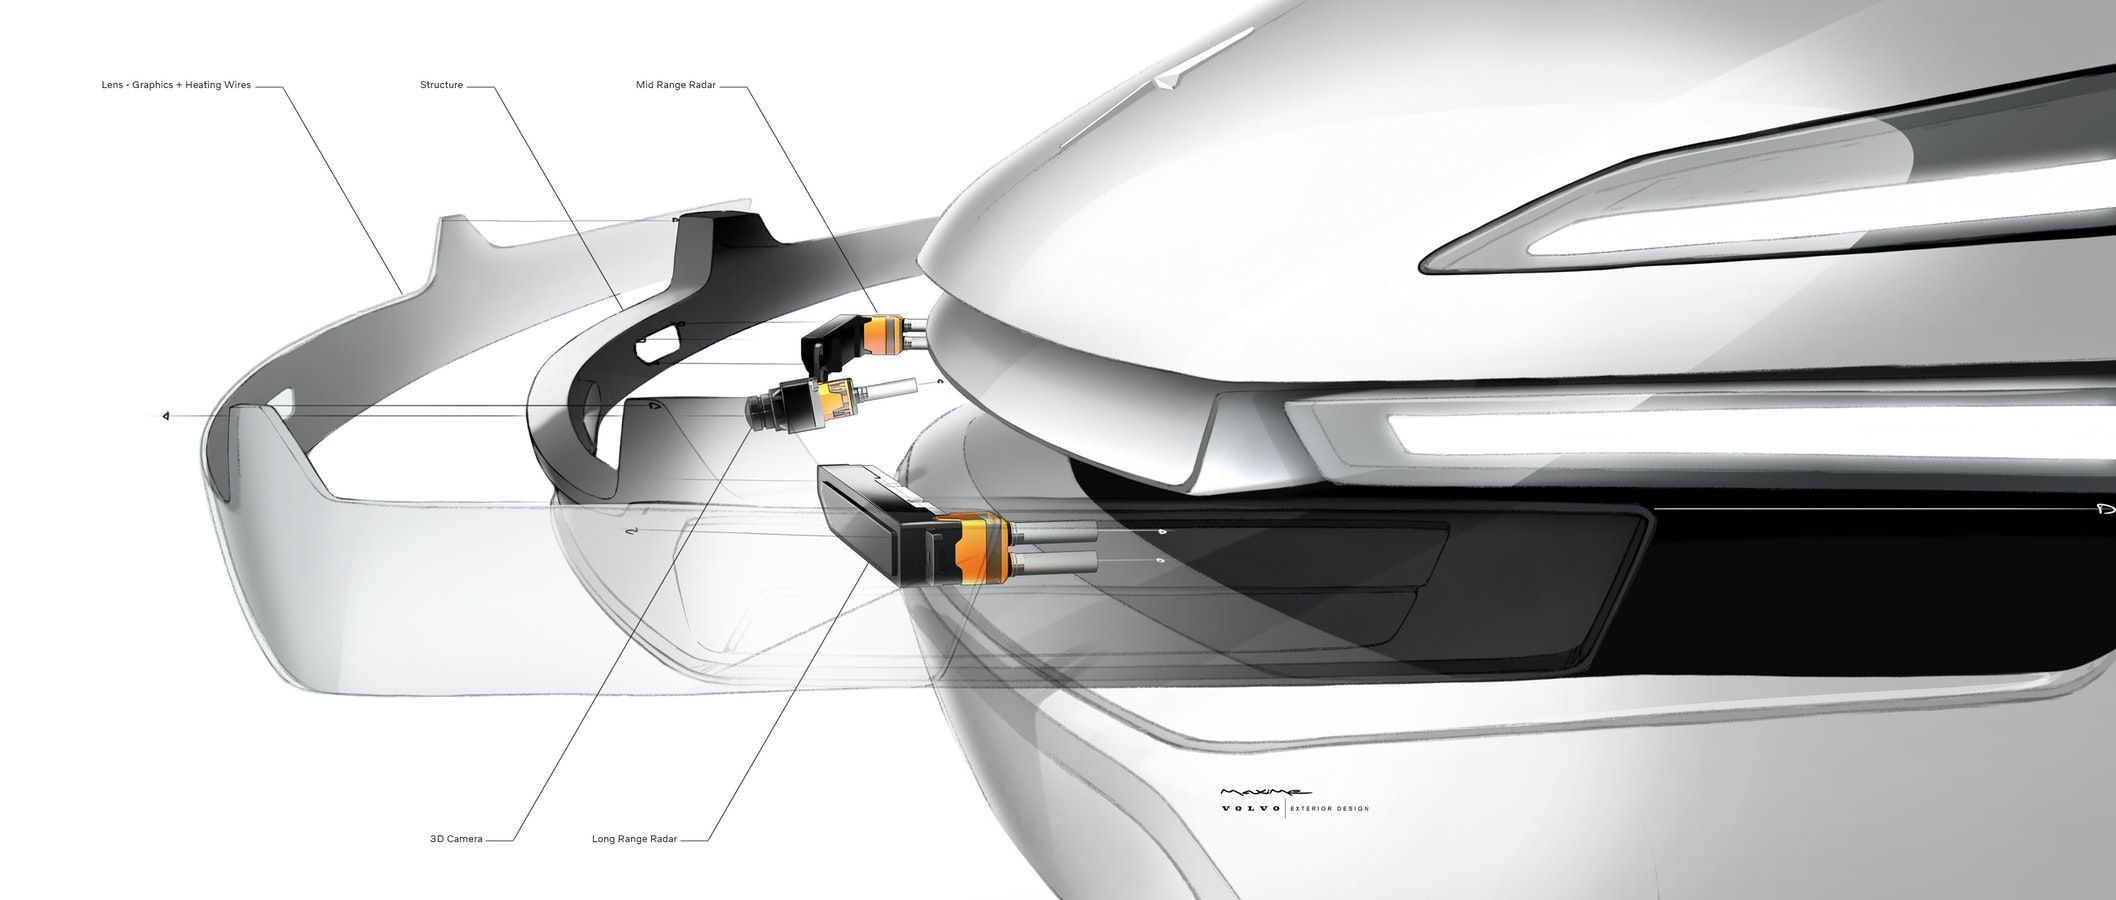 From breathing to seeing. The grille allowed the engine to breathe while the SmartZone allows the car to see.